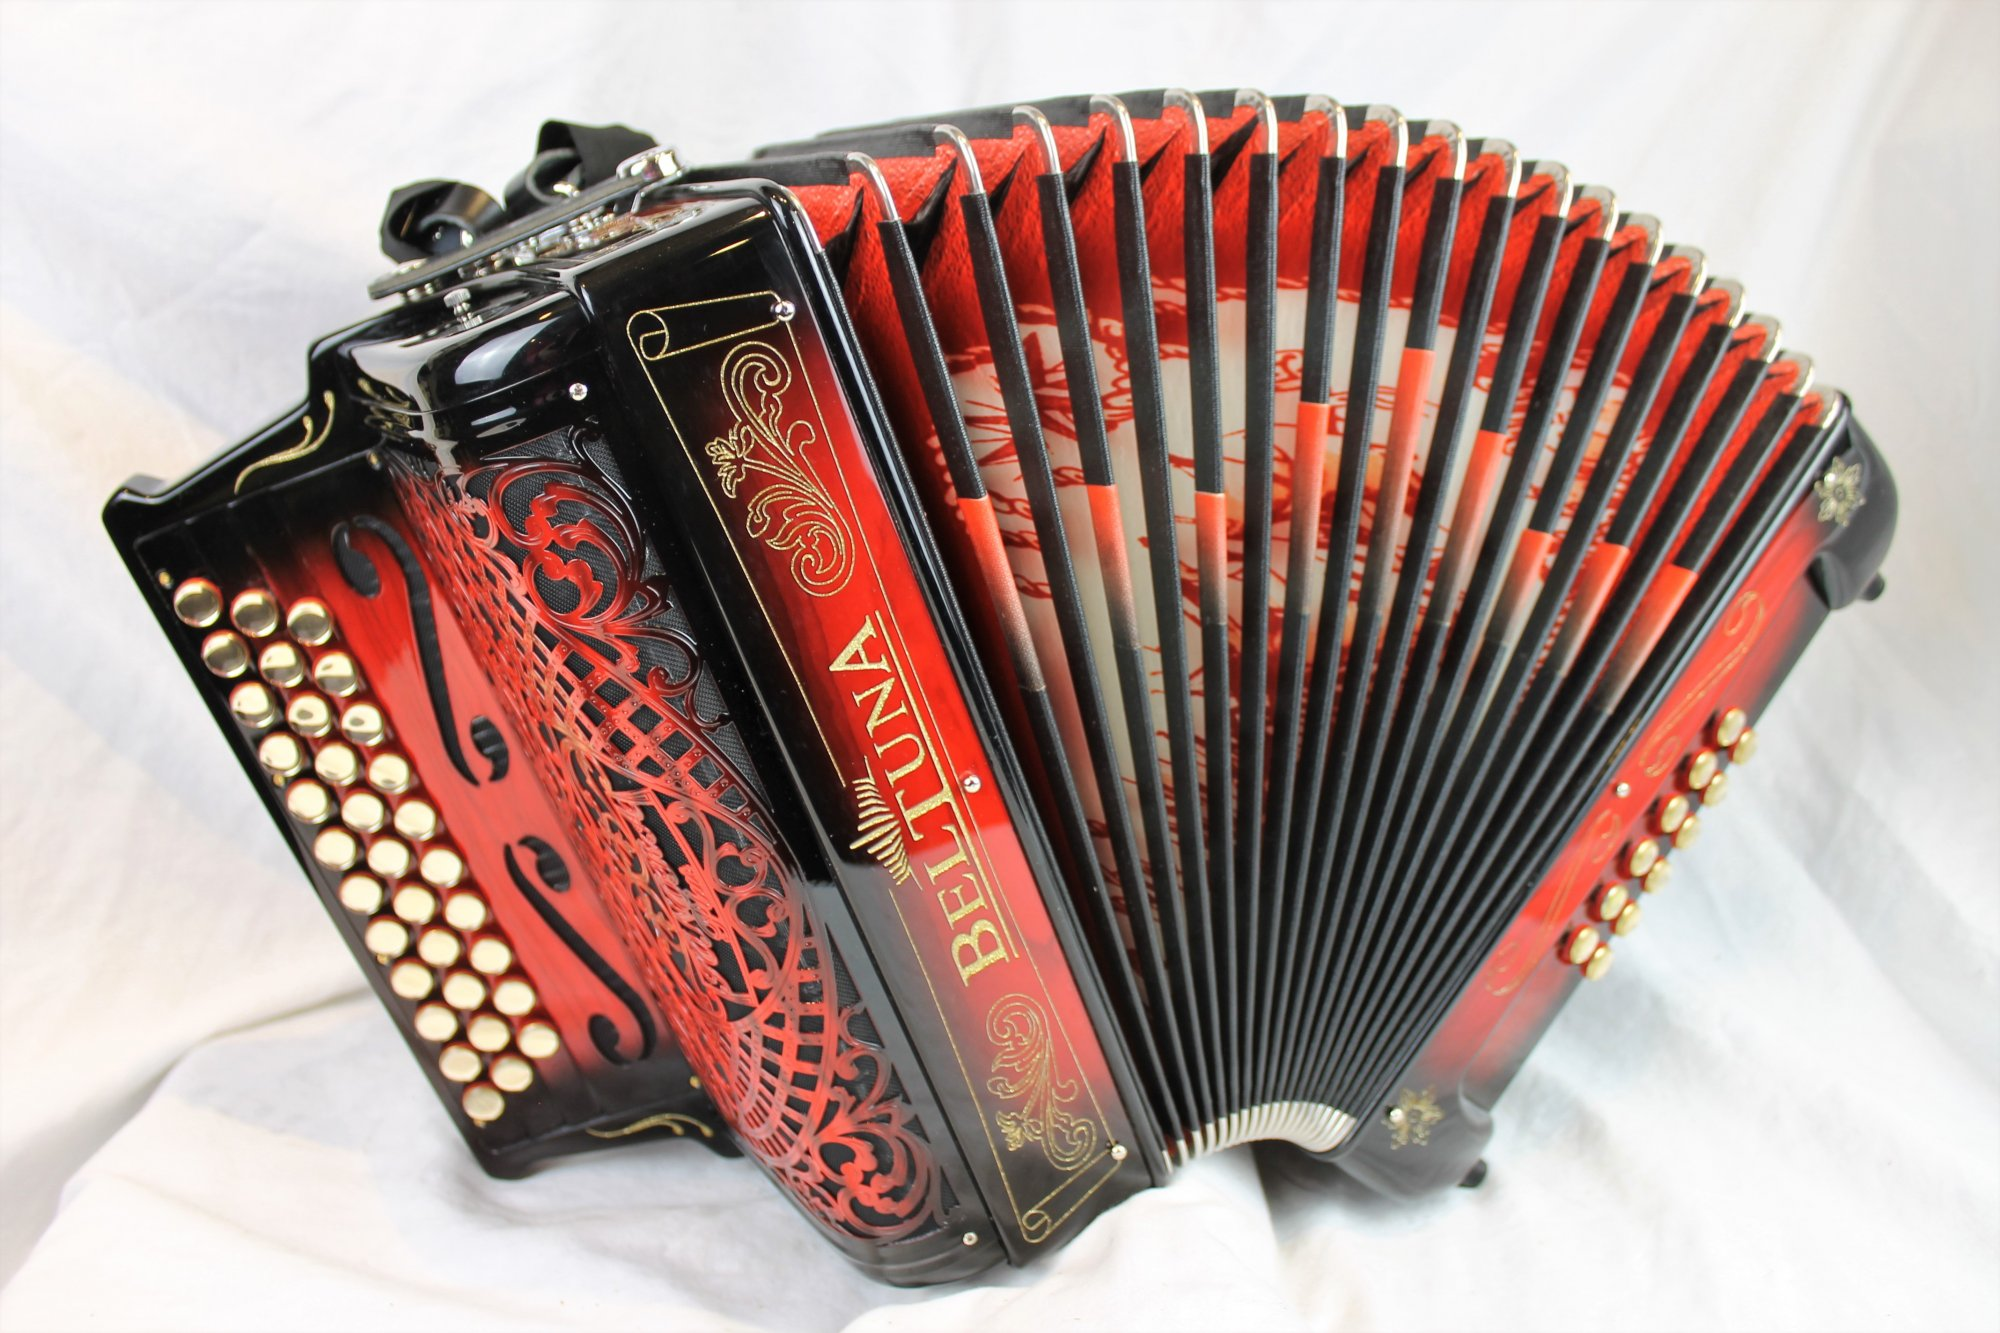 NEW Red Shadow Beltuna Sonora Luxe Pro Portuguese Concertina Diatonic Button Accordion GCF MMMM 33 12